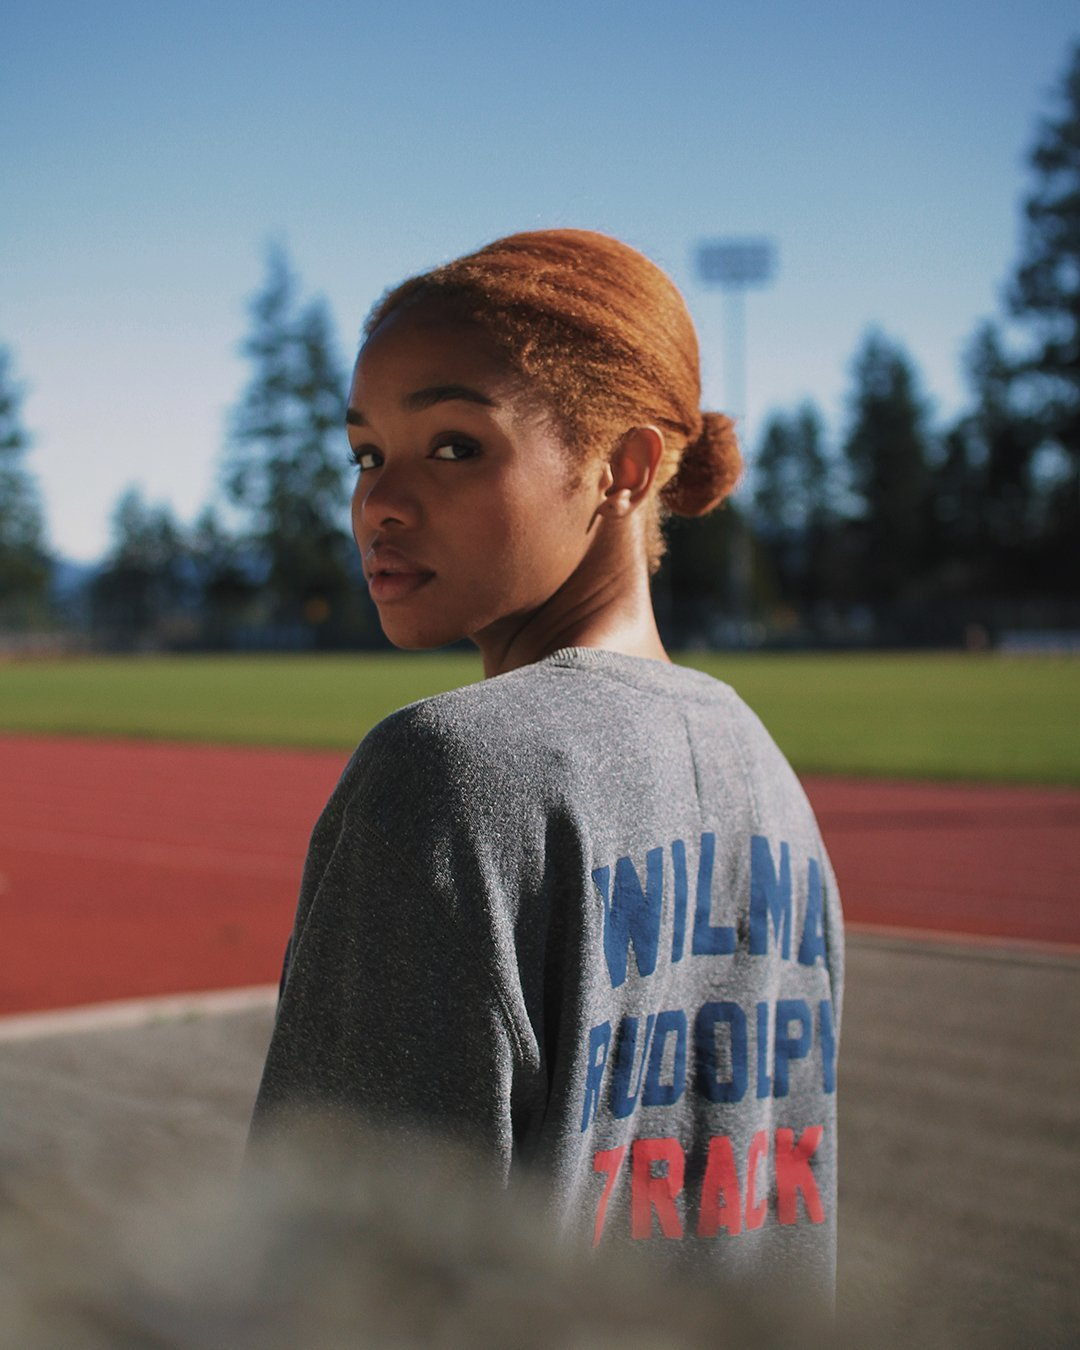 Wilma Rudolph USA Track Sweatshirt - Roots of Inc dba Roots of Fight